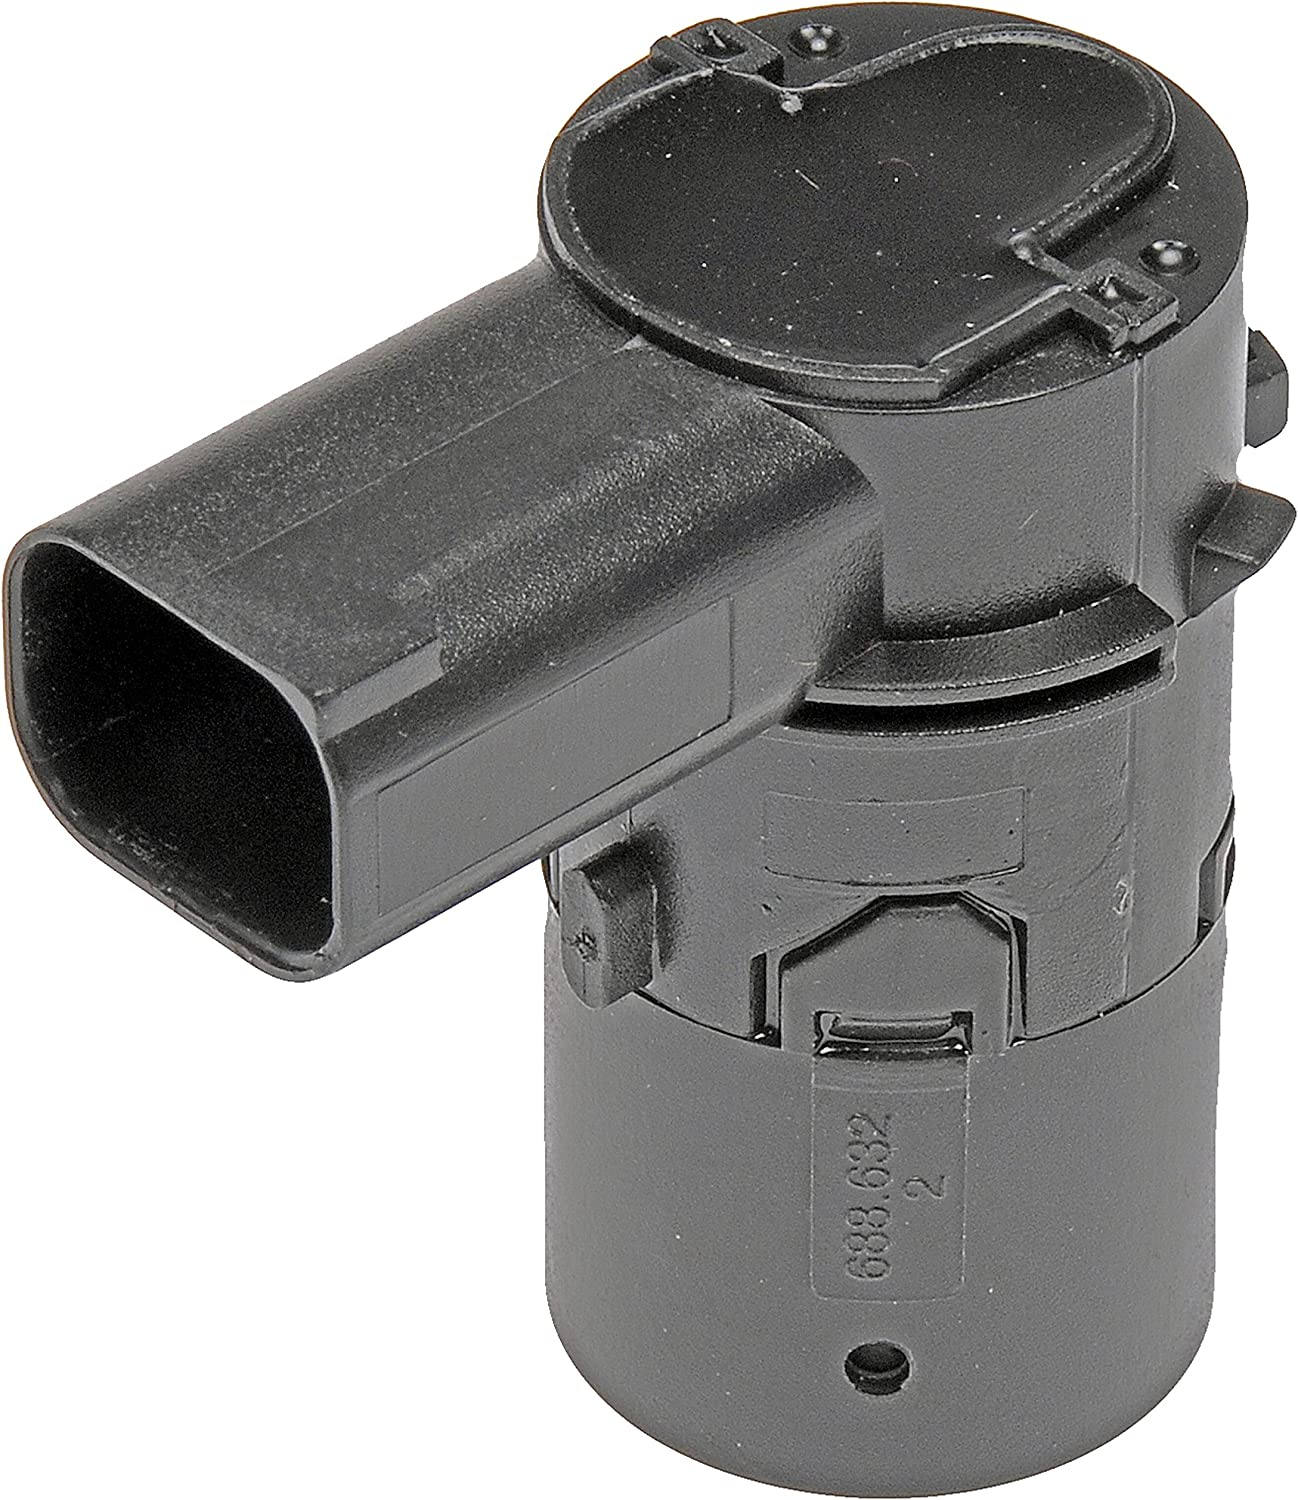 High quality Dorman 684-029 Rear Parking Assist Sensor Linc Ford for Select Max 77% OFF